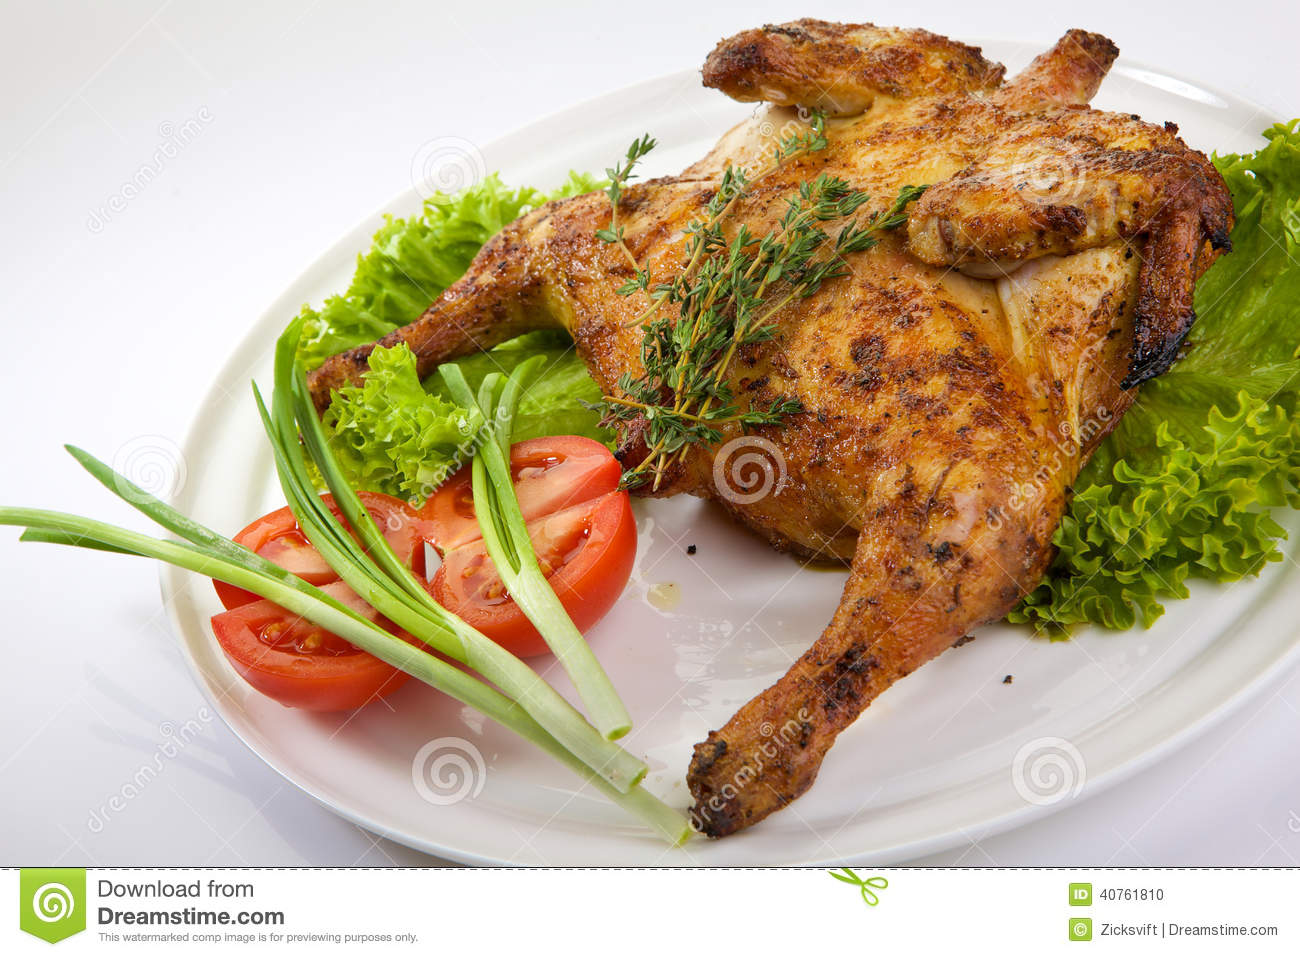 Roast Chicken Stock Photo - Image: 40761810